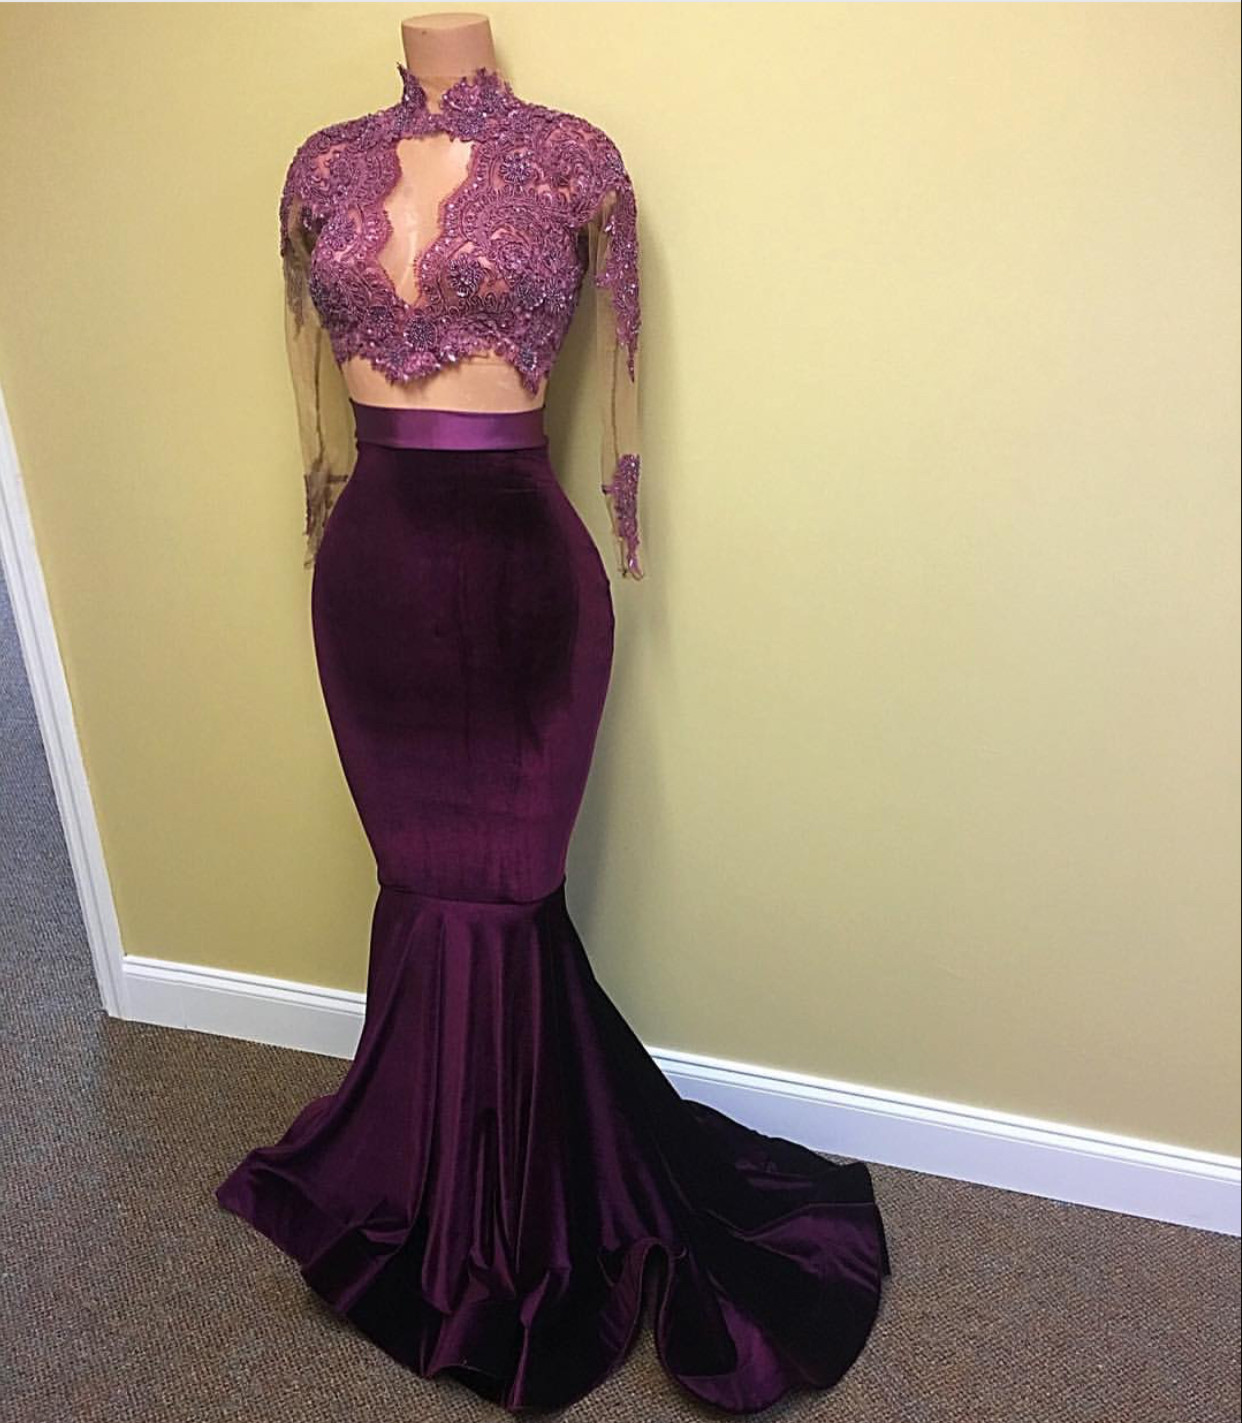 New Grape Mermaid Prom Dress Lace High Neck Long Sleeves Velvet Evening Gowns from Yaydressy